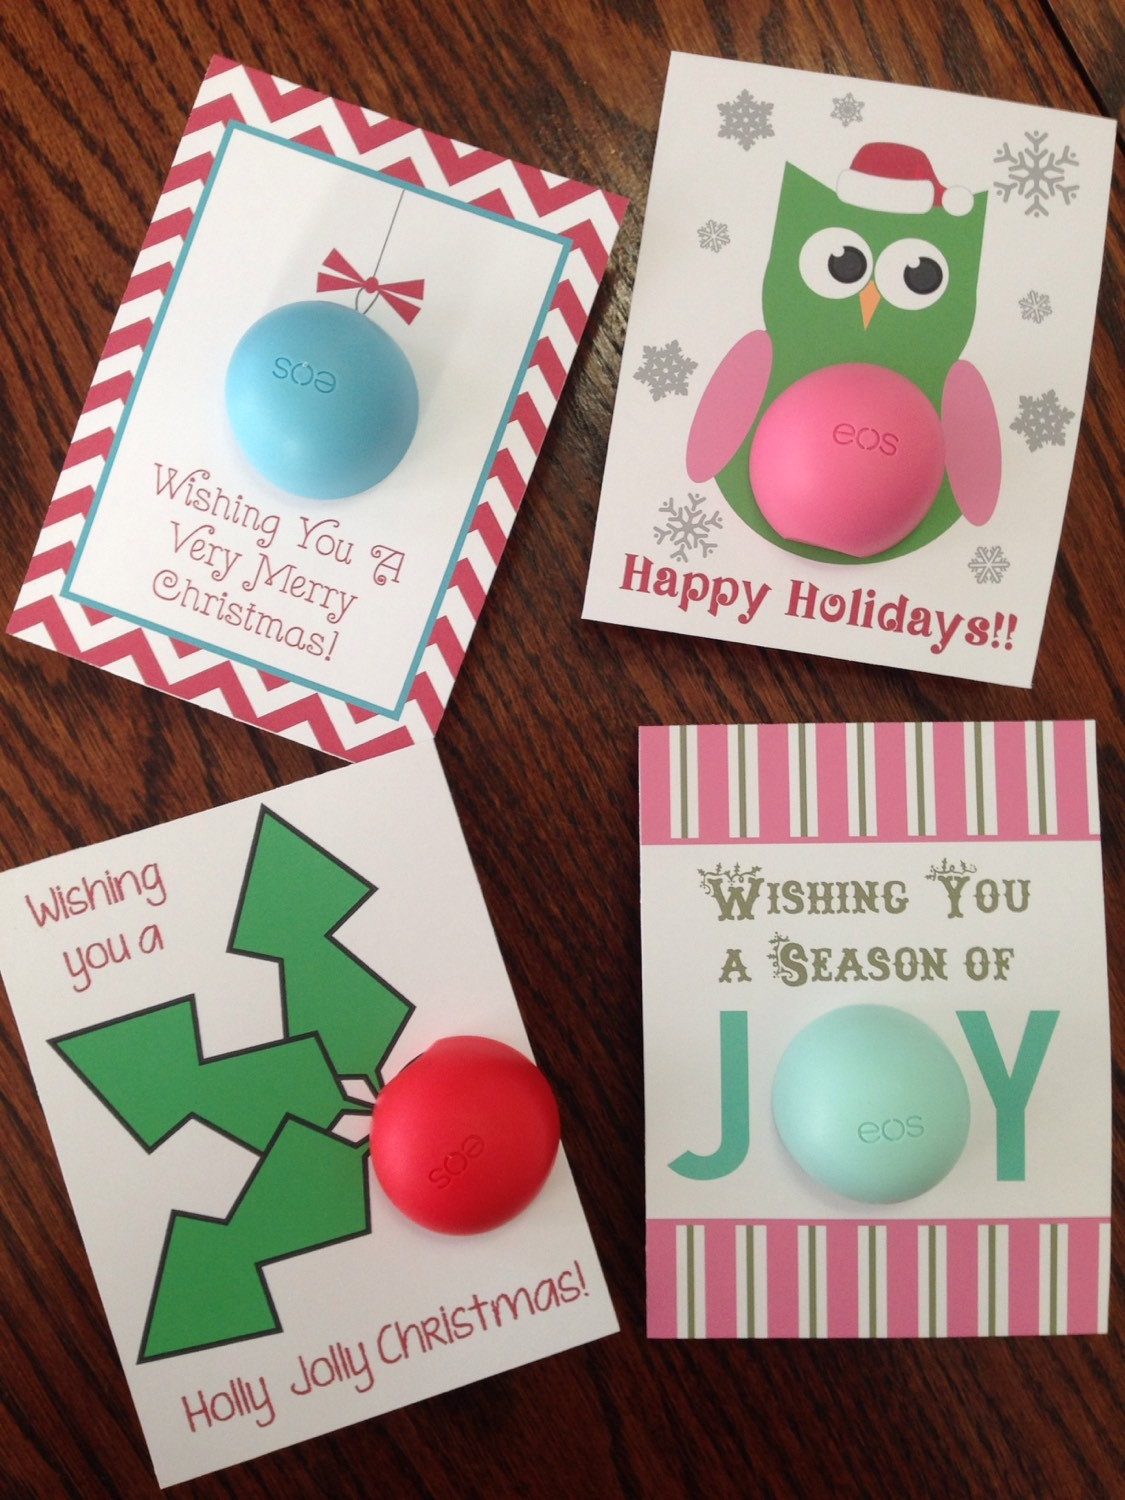 Holiday Christmas cards/gift tags for EOS lip balm